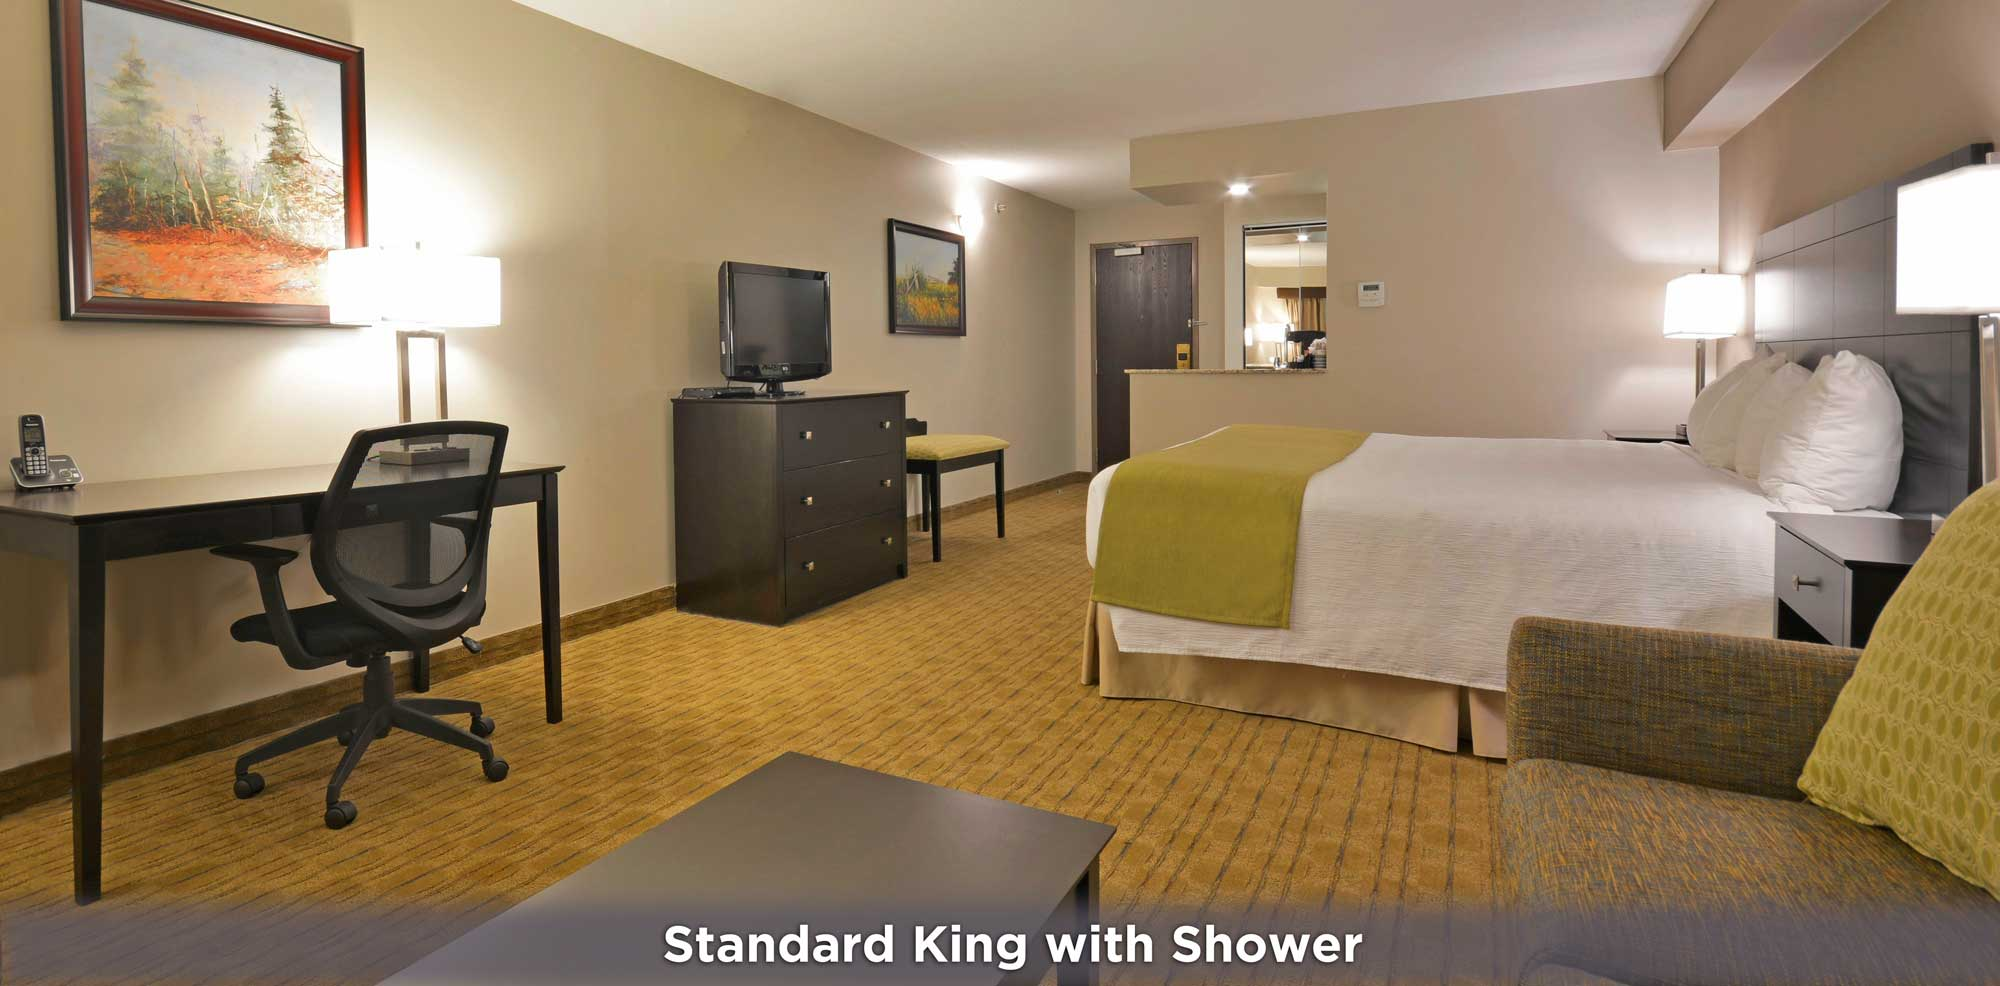 Standard King with Shower